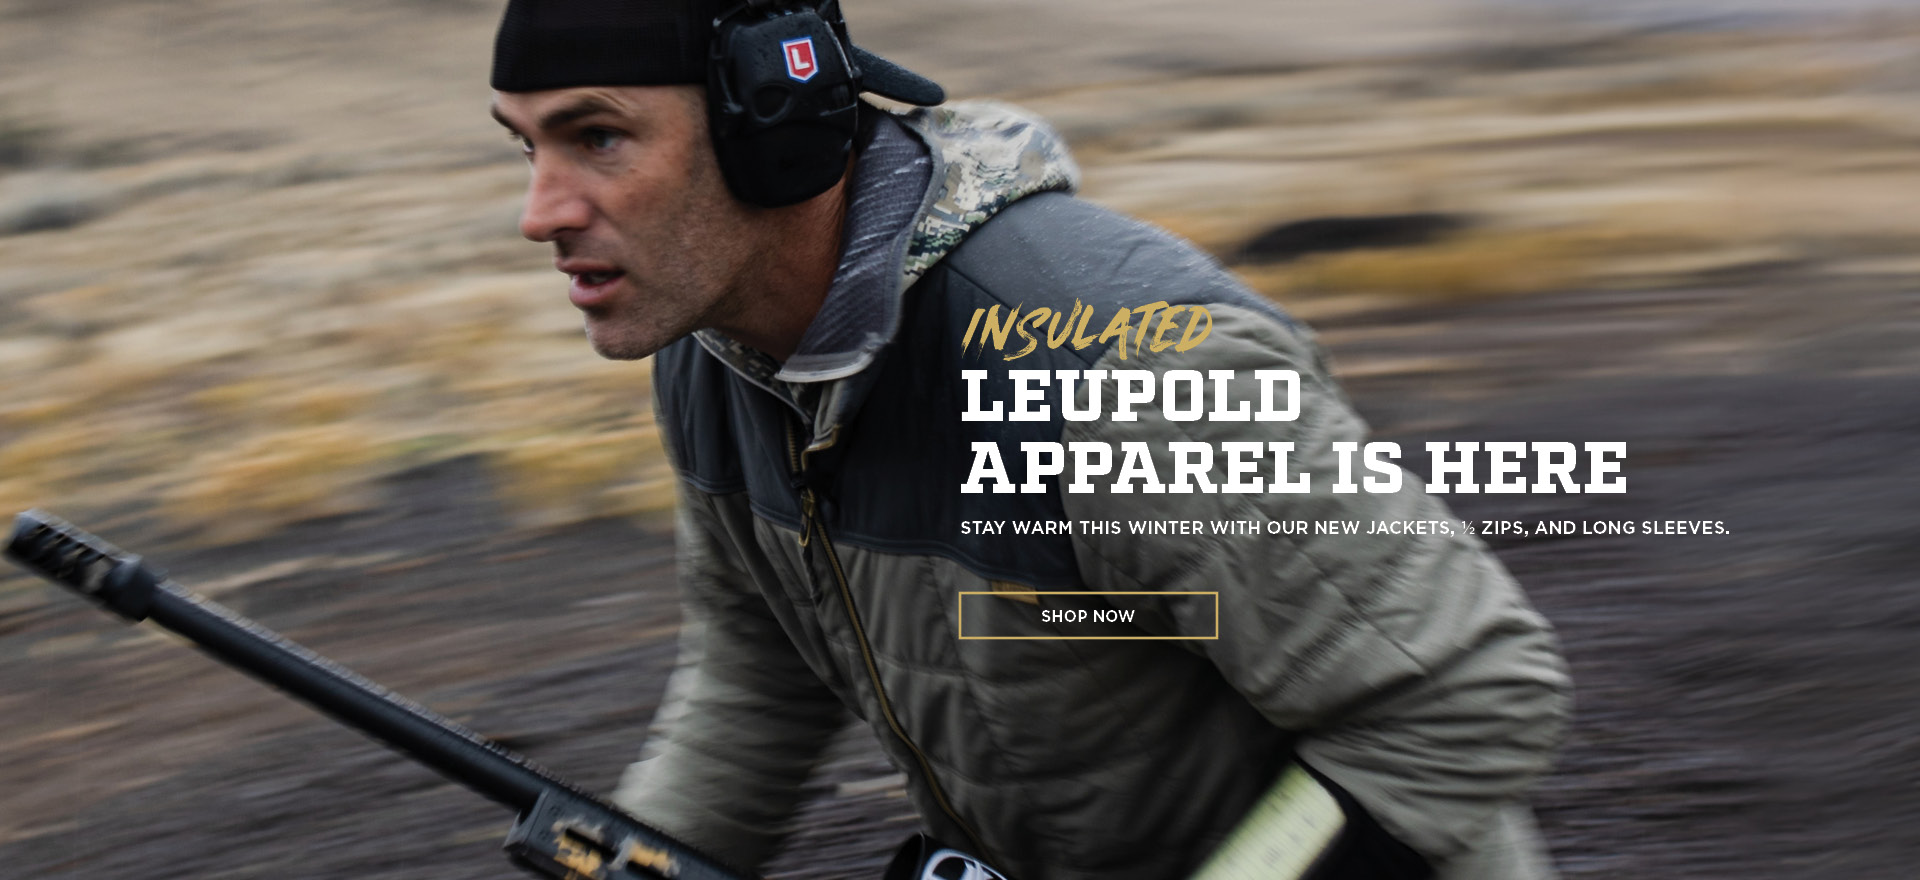 Insulated Apparel